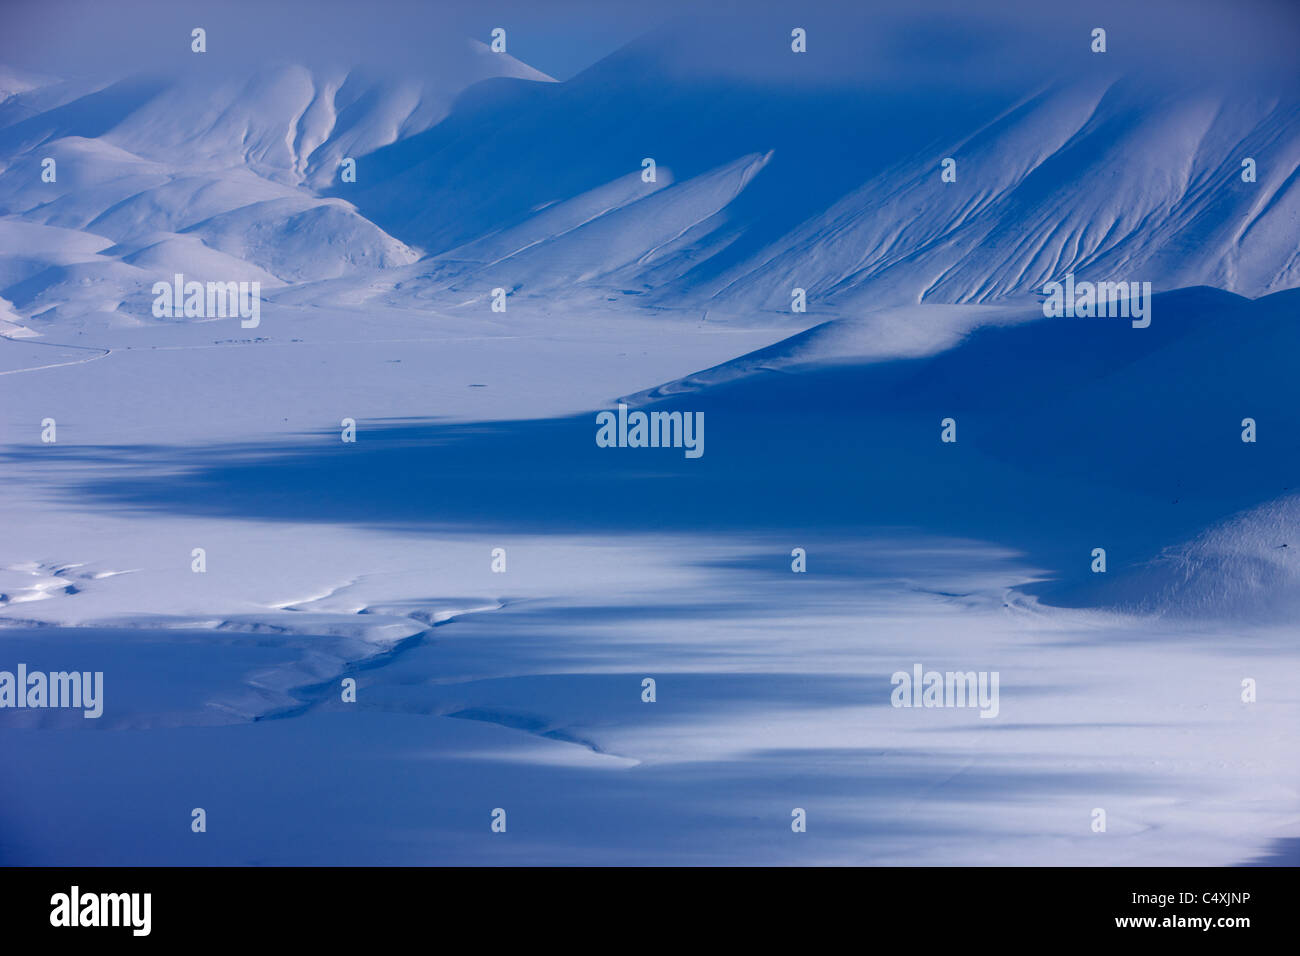 the Piano Grande in winter, Monti Sibillini National Park, Umbria, Italy Stock Photo